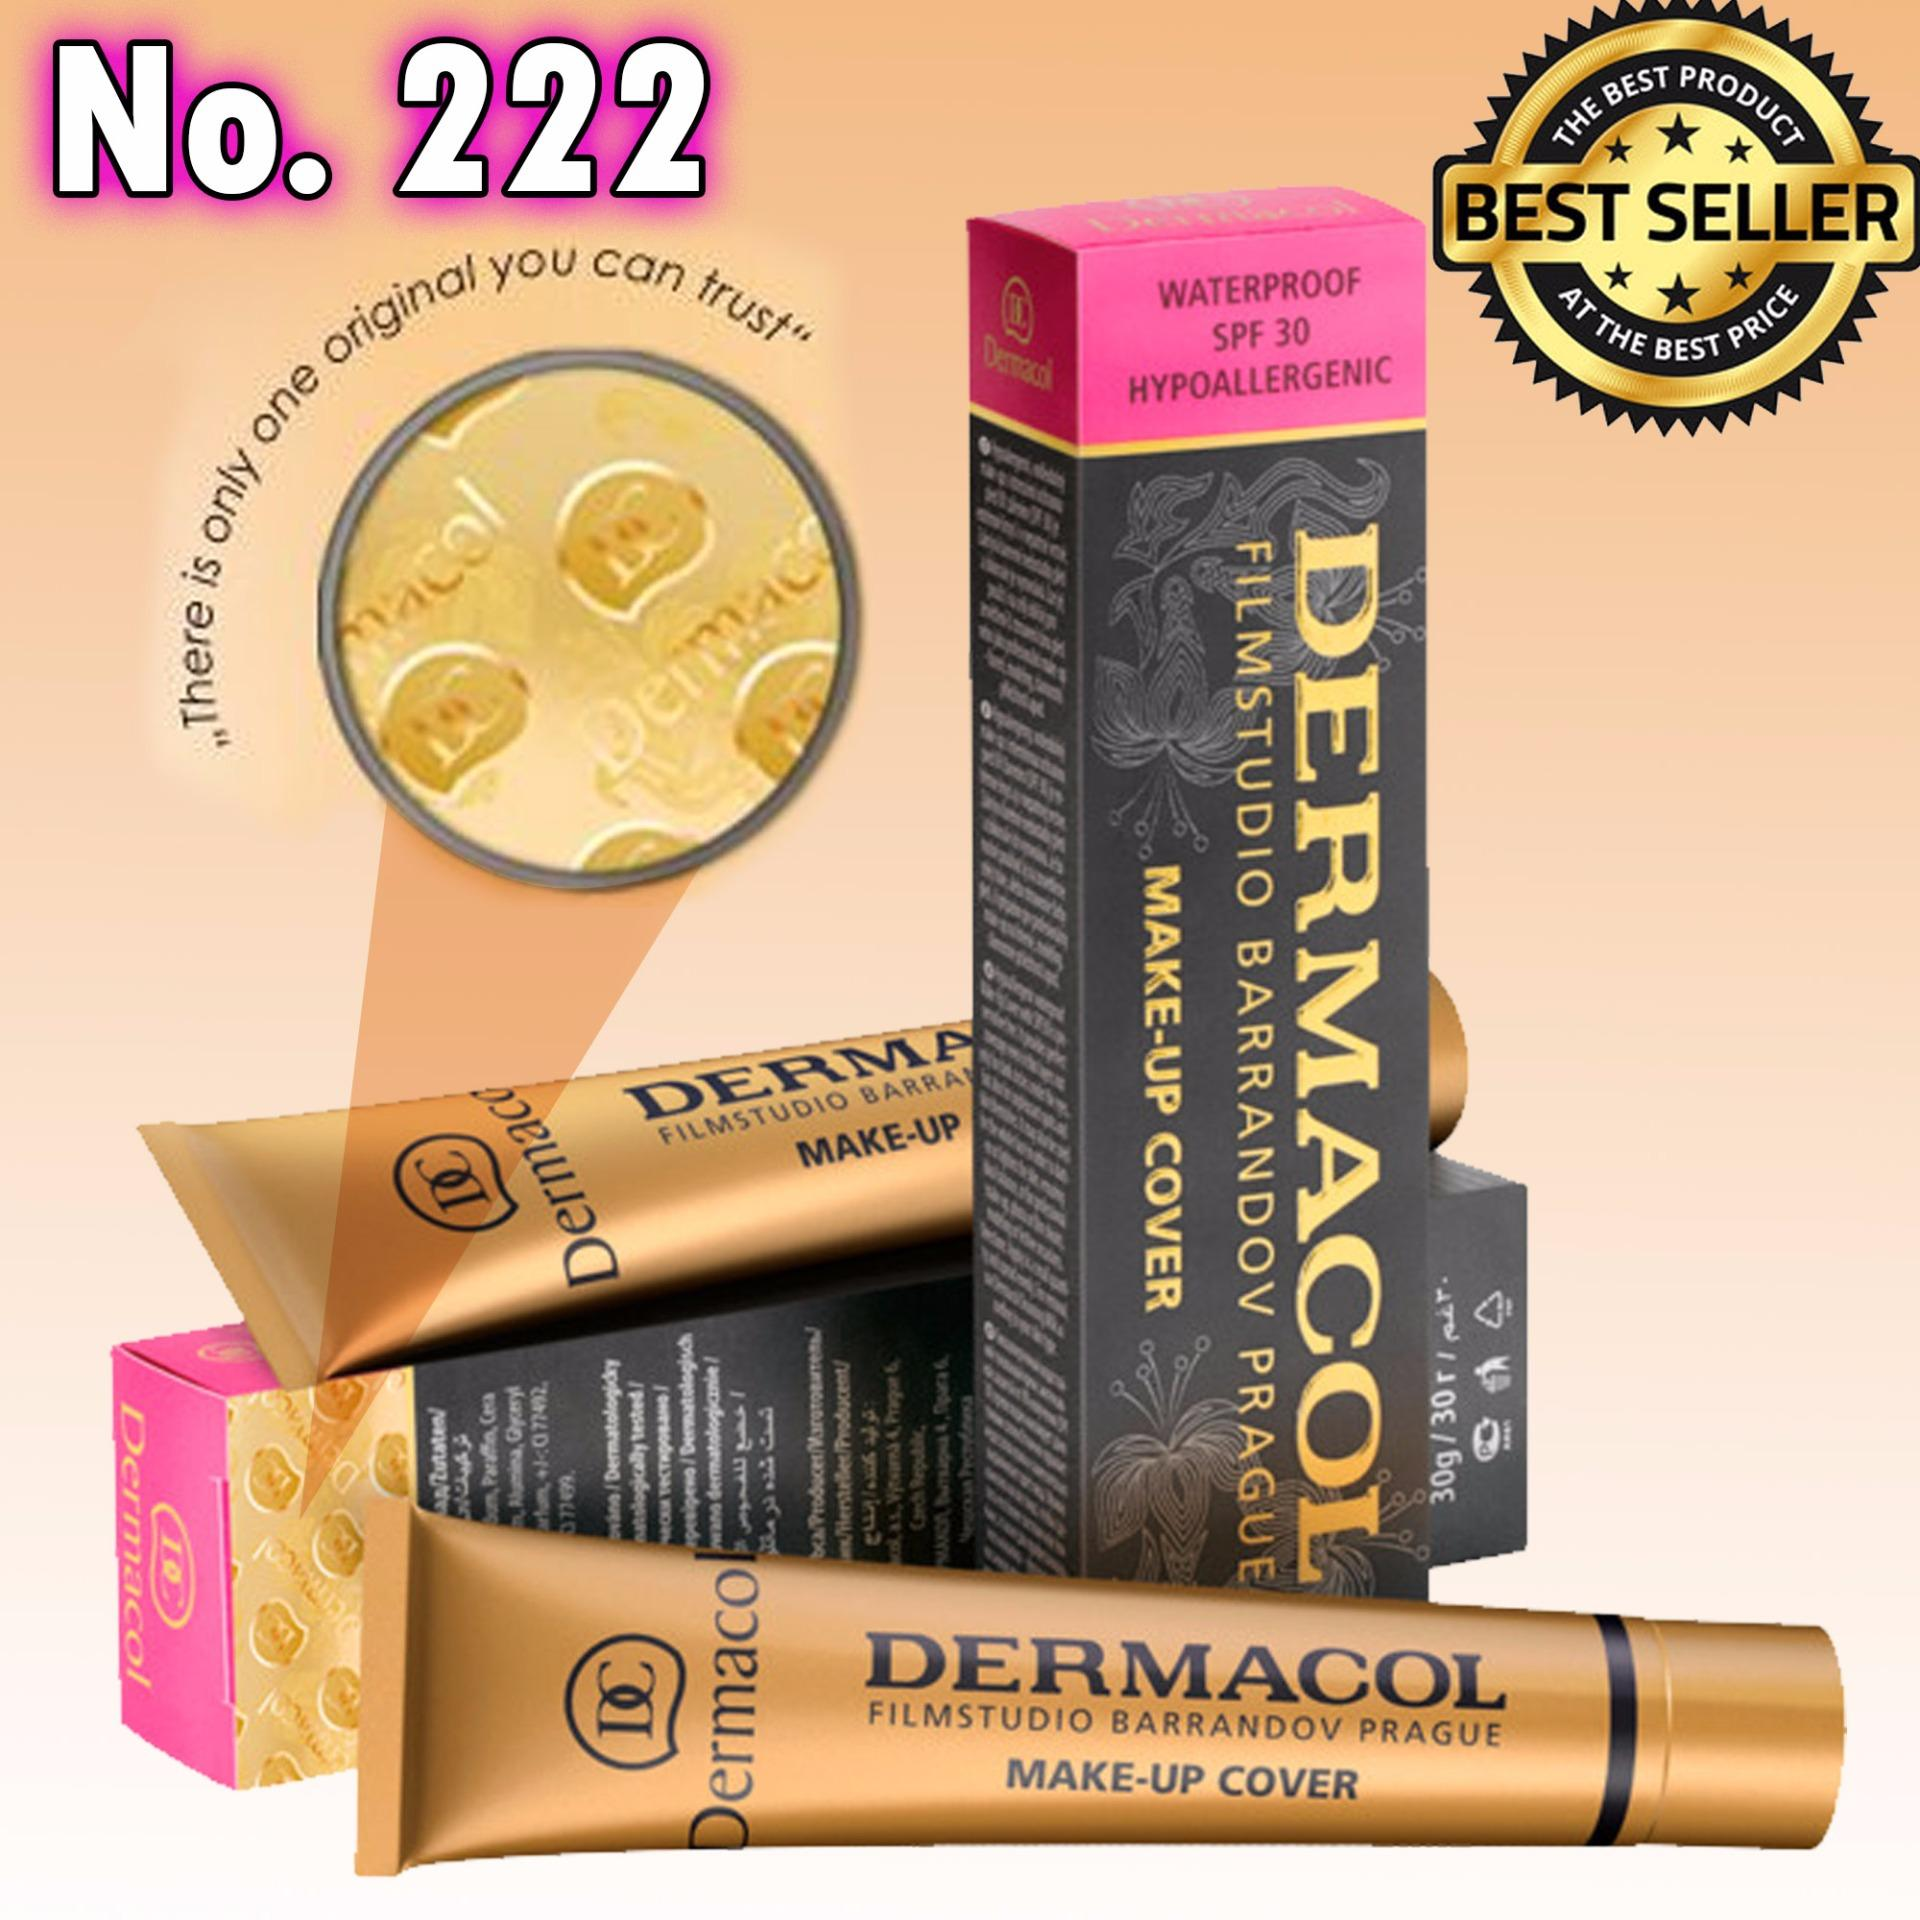 Dermacol Make-Up Cover Foundation Shades No.222 Philippines